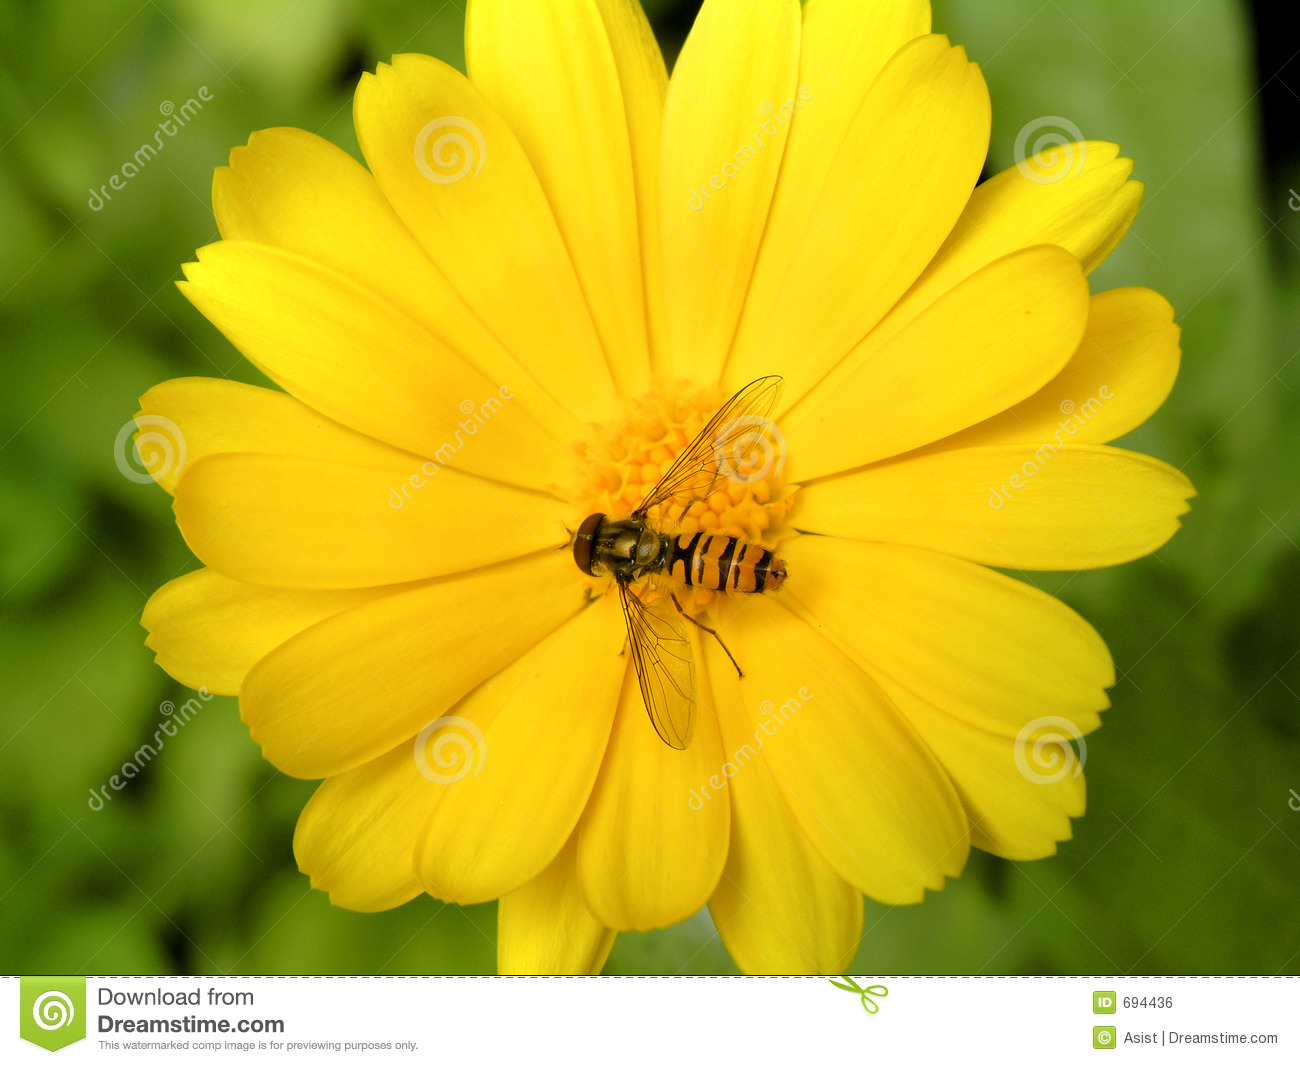 Buzz fly sitting on yellow marigold